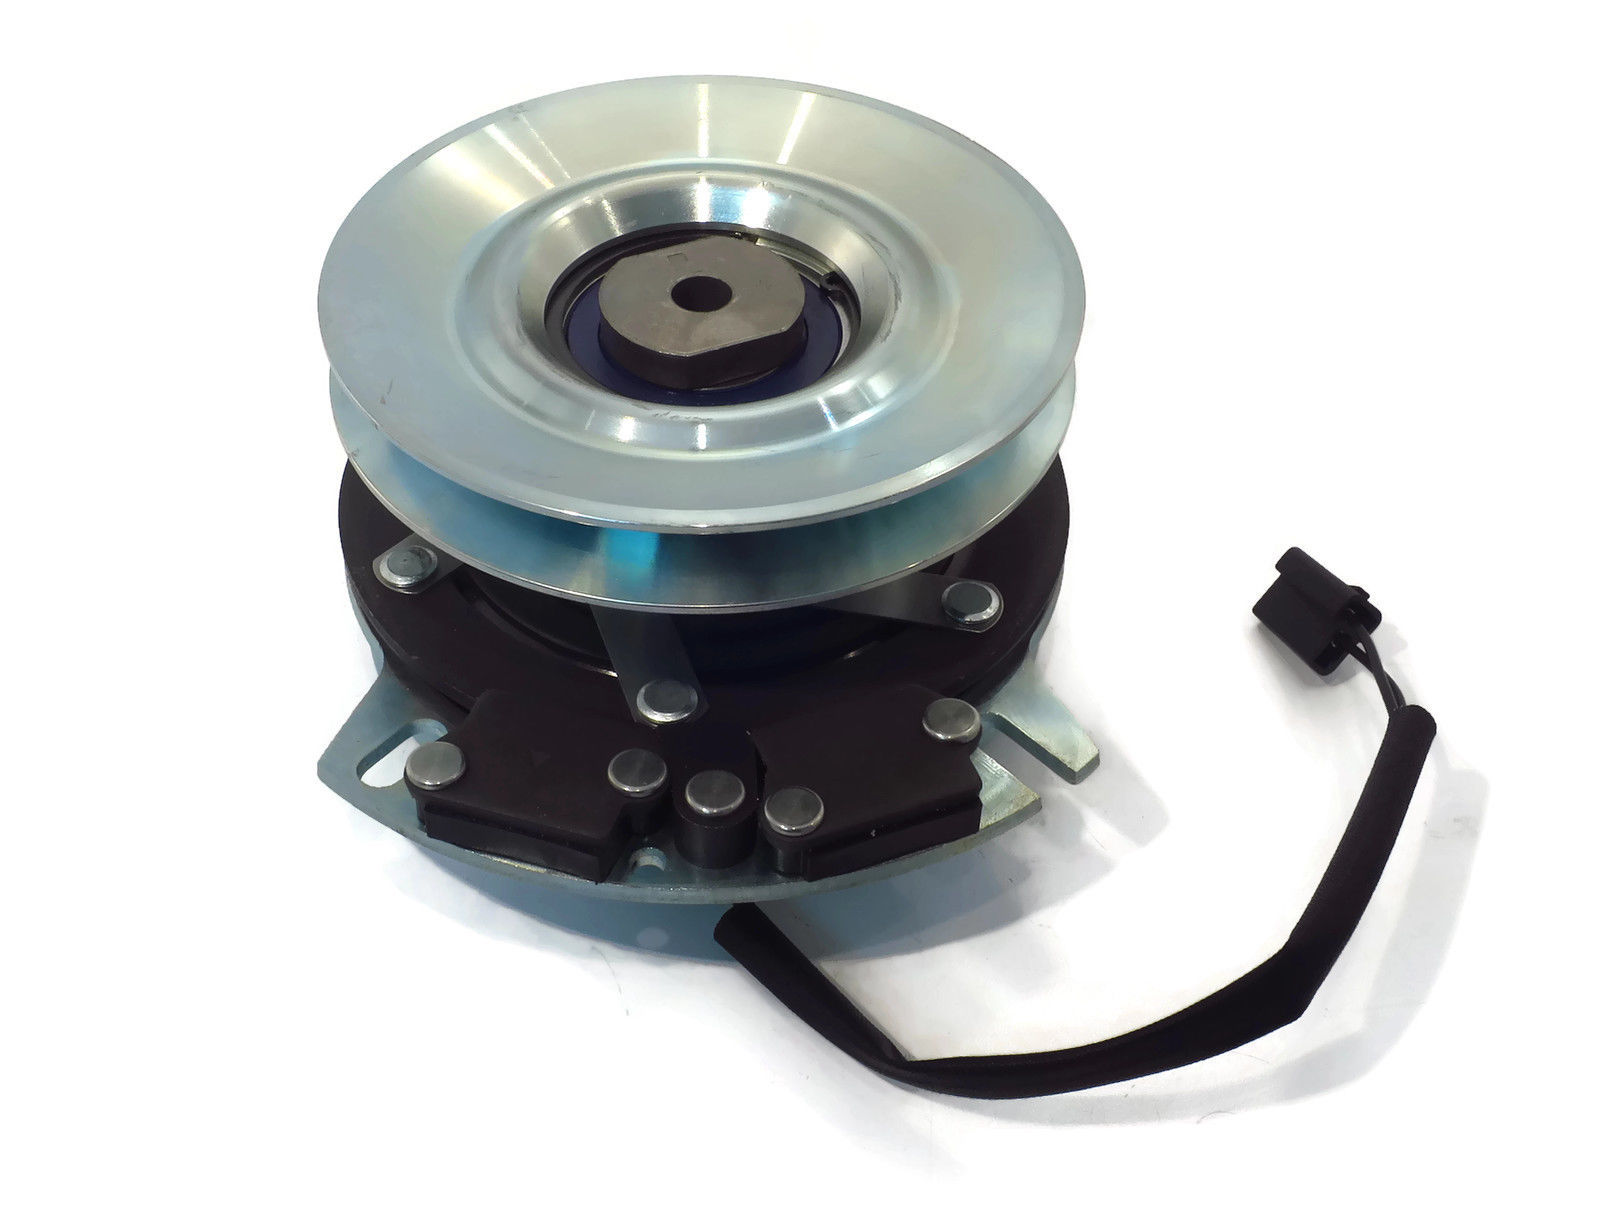 5219-64 5219-51 917-04174 NEW HD UPGRADED PTO CLUTCH REPLACES 717-04174 X0008 5219-79 717-04174A 917-04174A